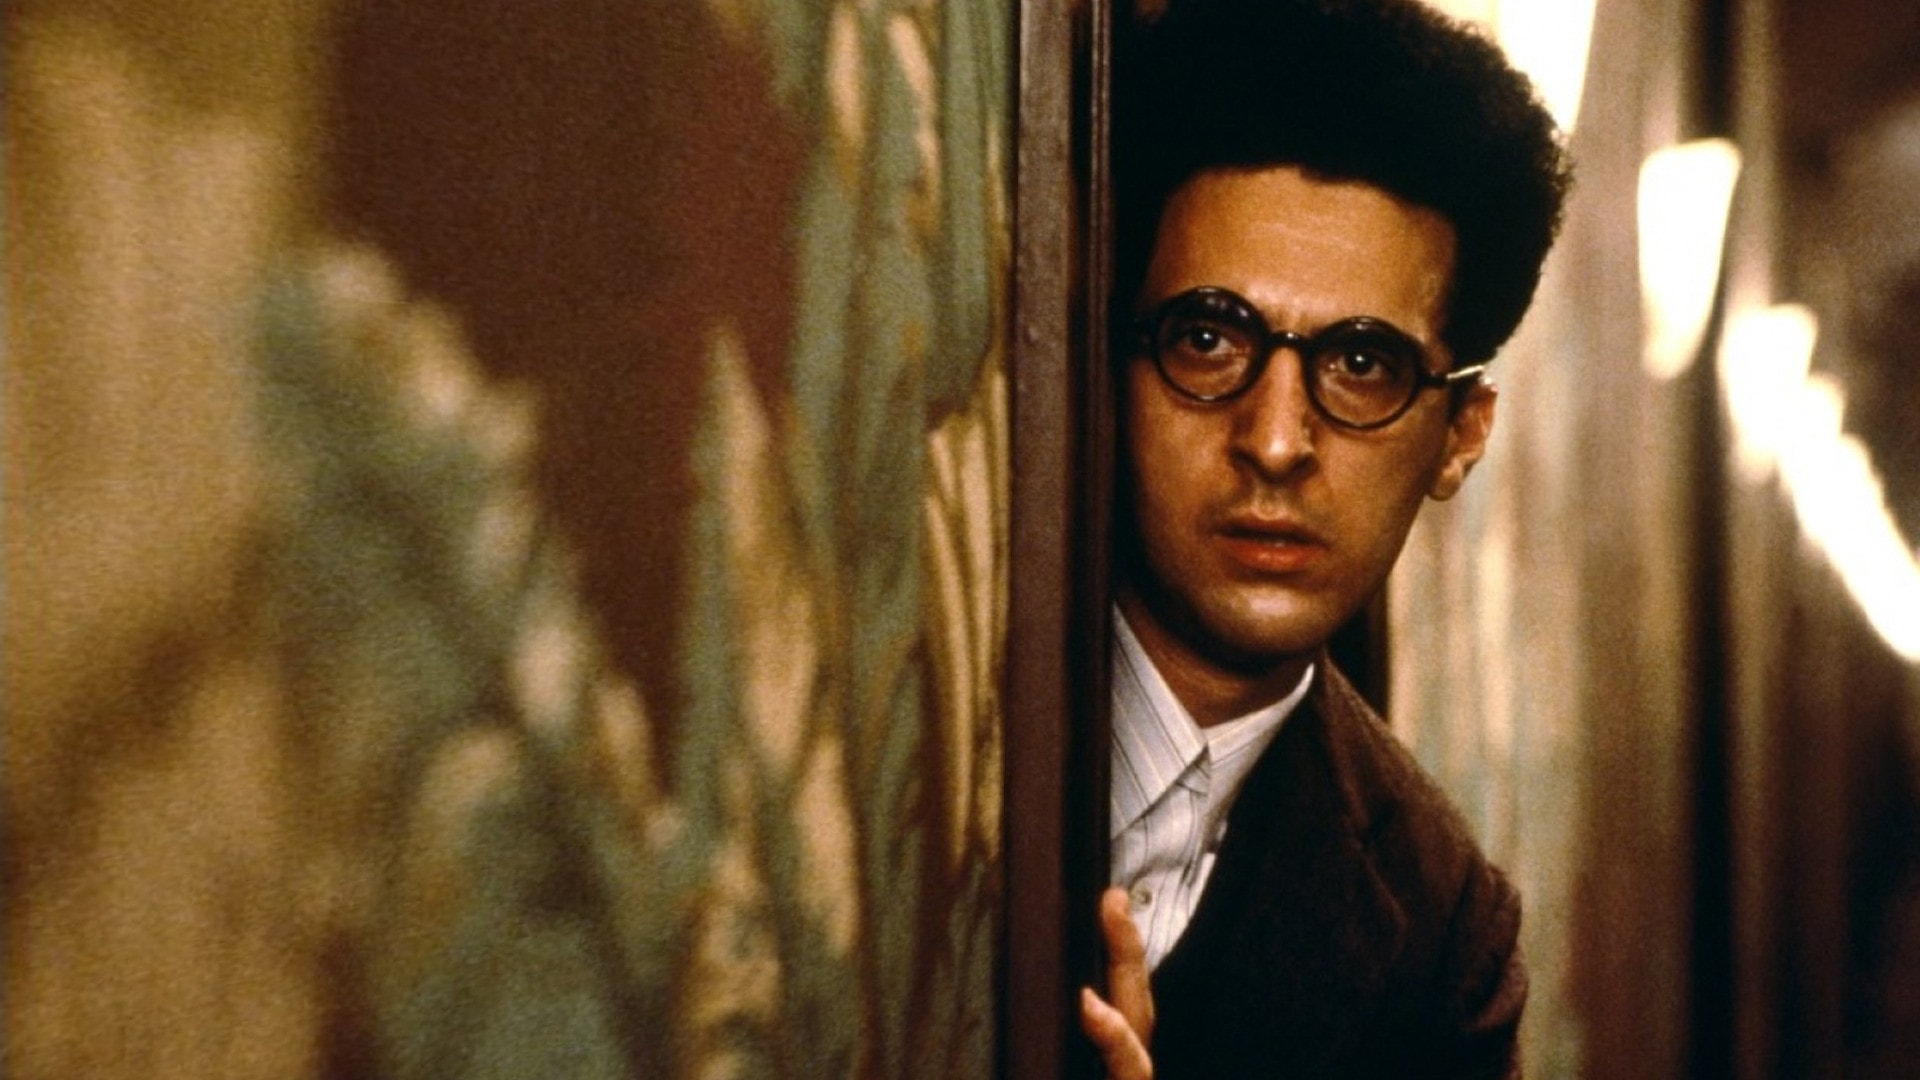 John Turturro Widescreen for desktop